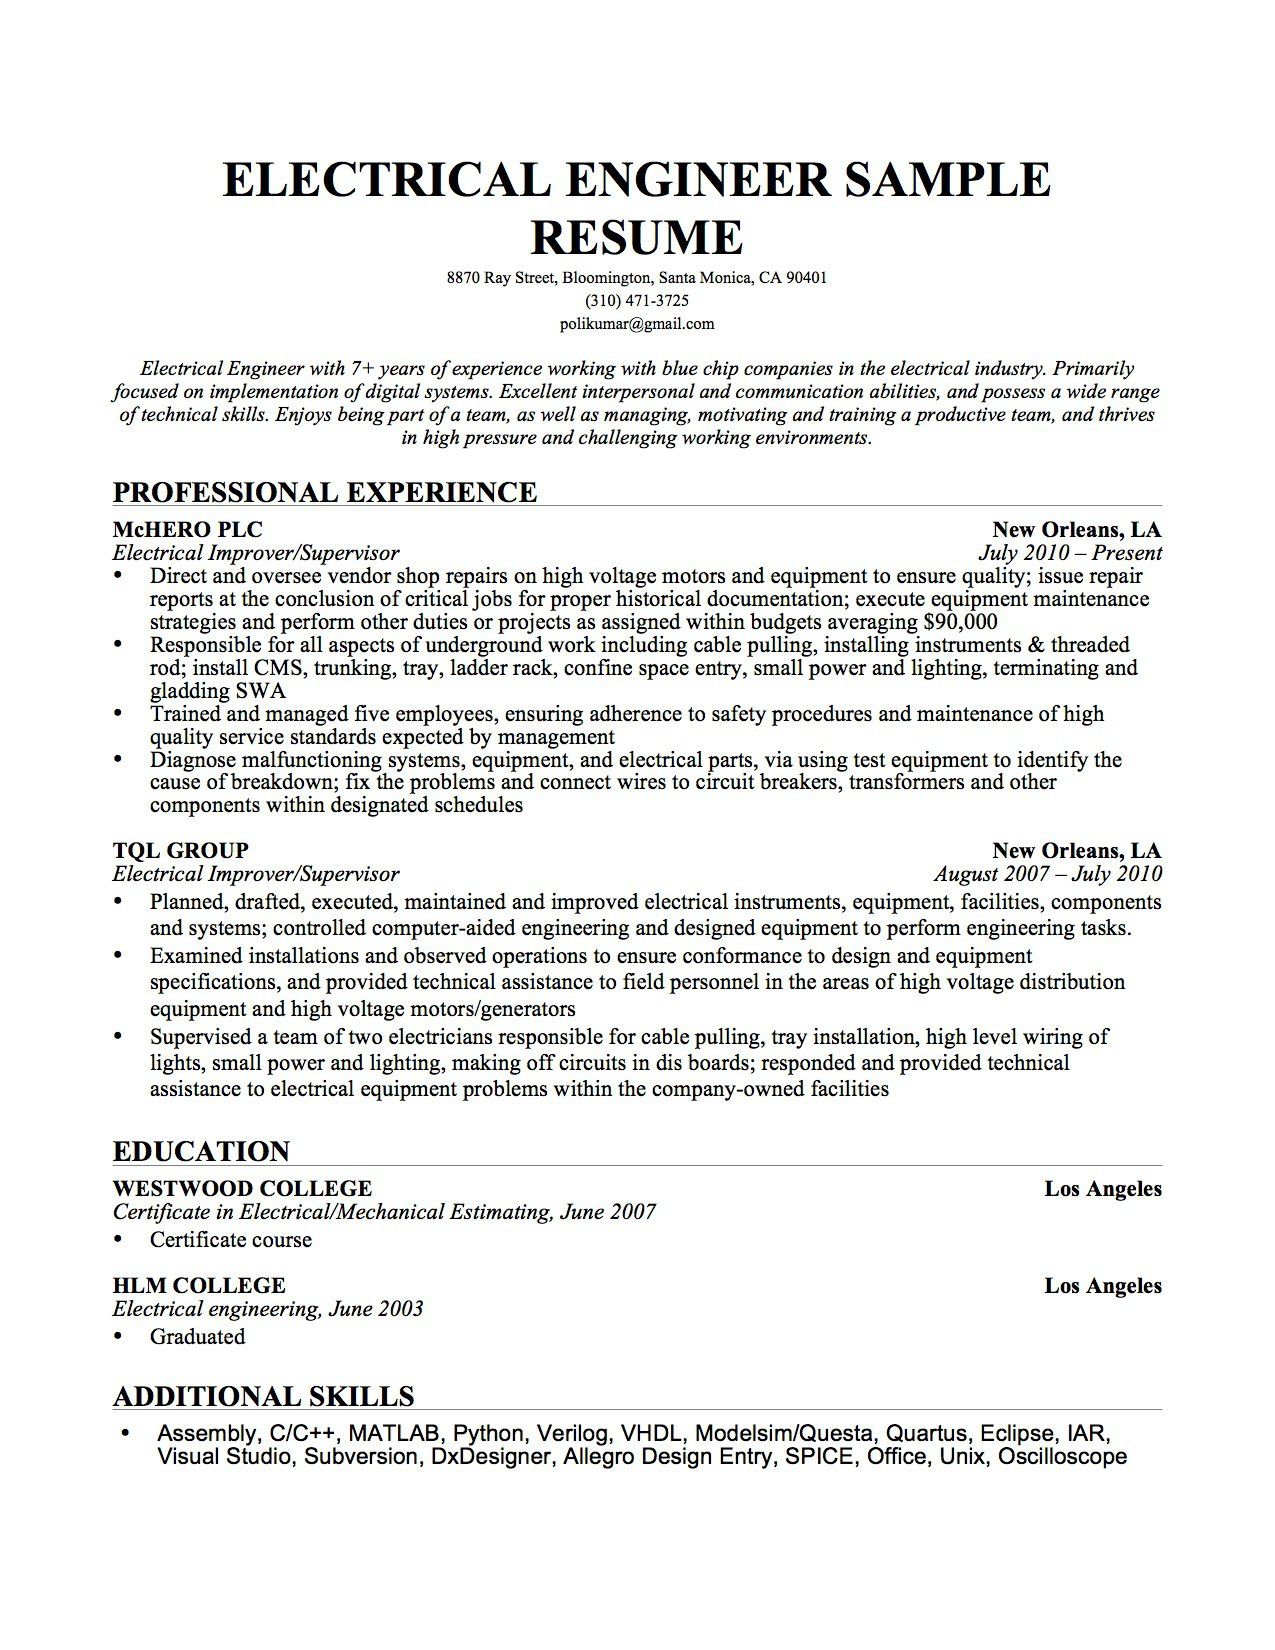 Job Objective For Resume Engineer Sample Resume Equipment Fixed Biomedical Technician Cover